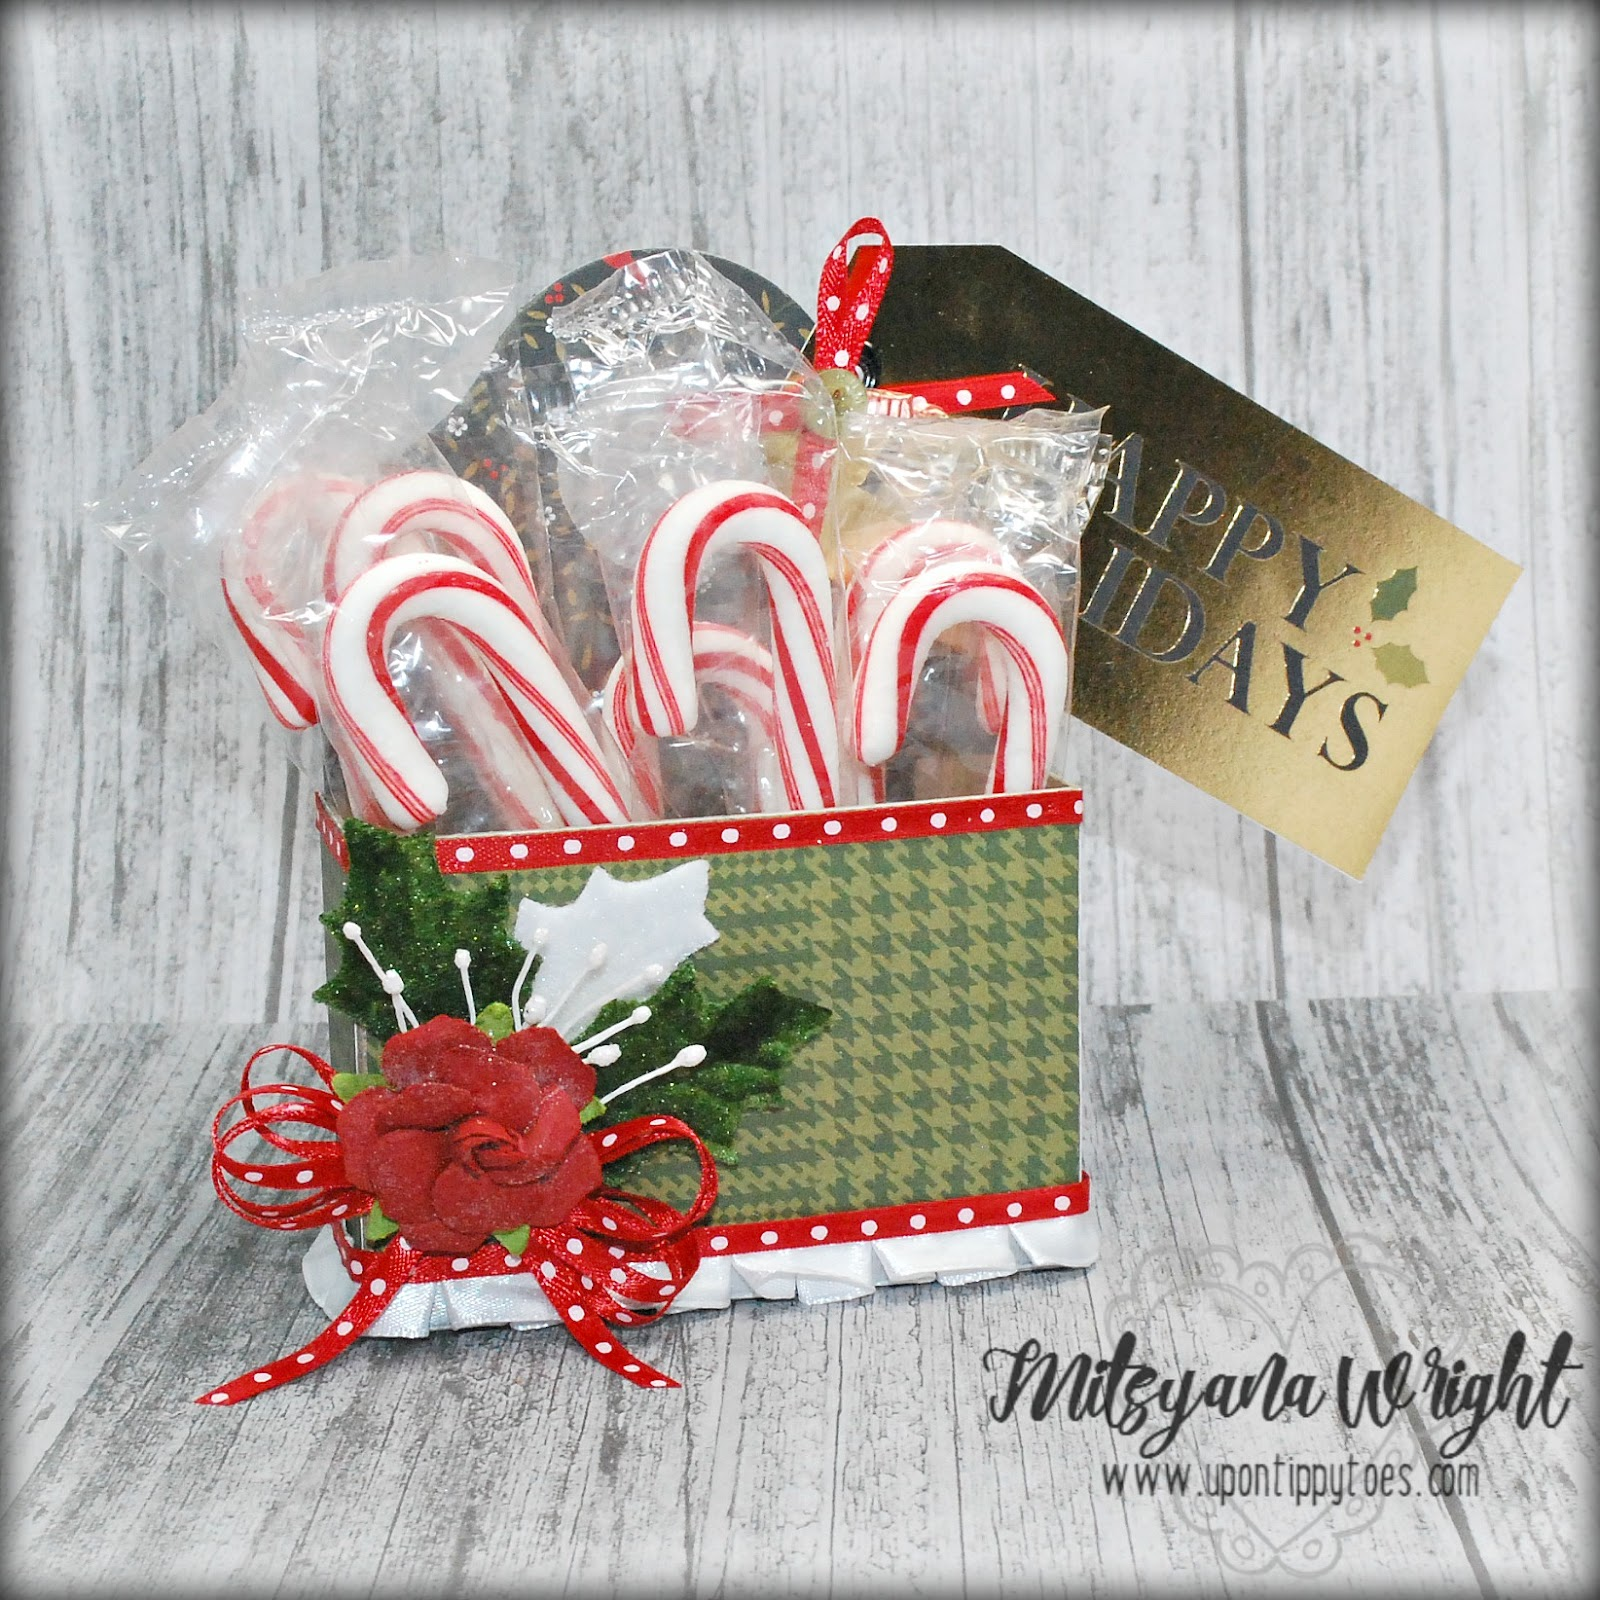 candy cane caddy.jpg